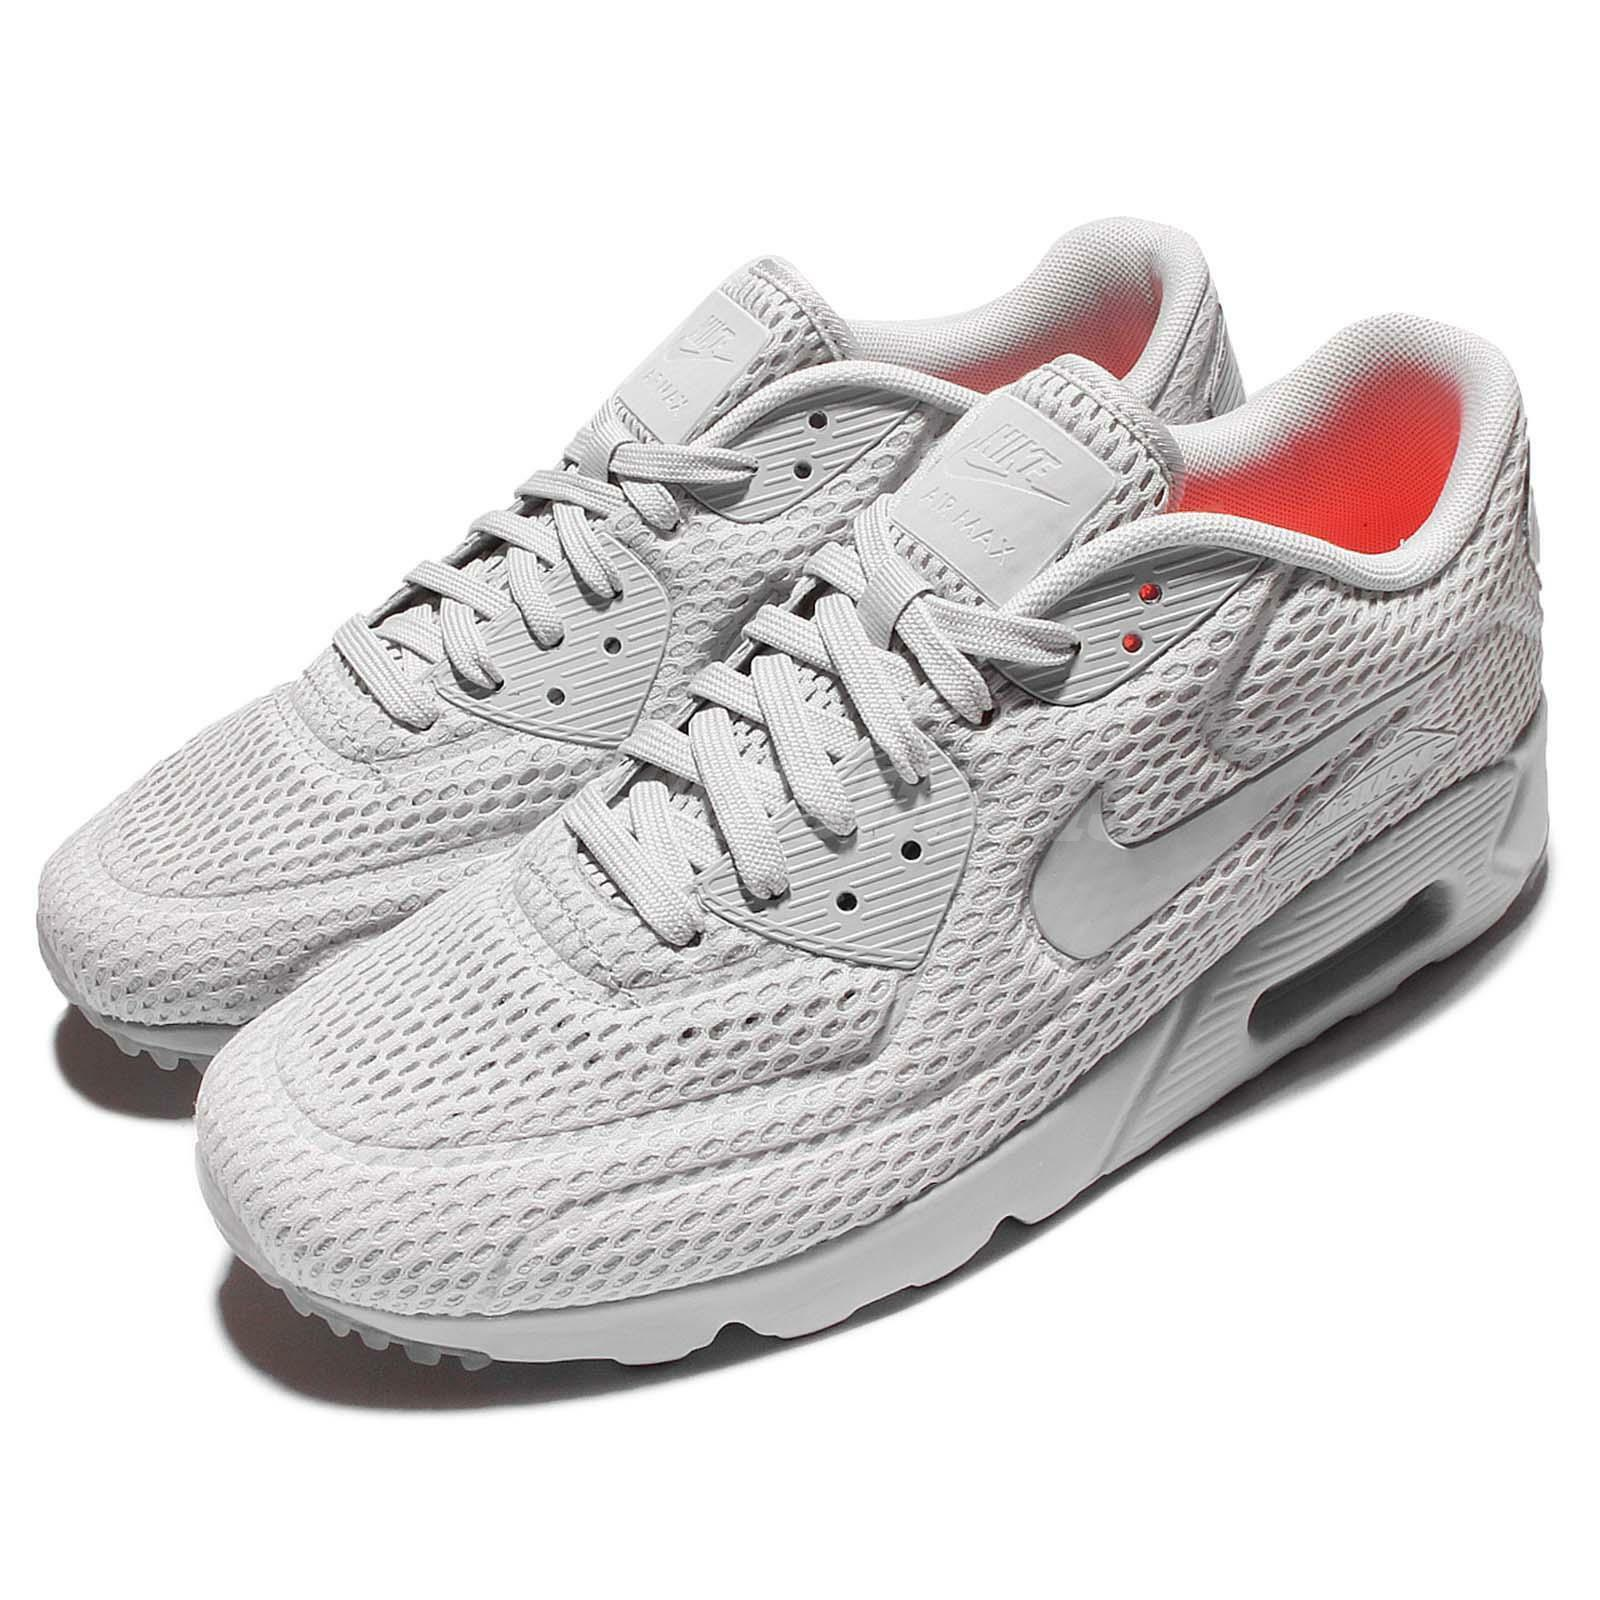 buy popular 2da95 11121 Nike Air Max 90 Ultra BR Breeze Pure Platinum Mens Running Trainers 725222- 012 well